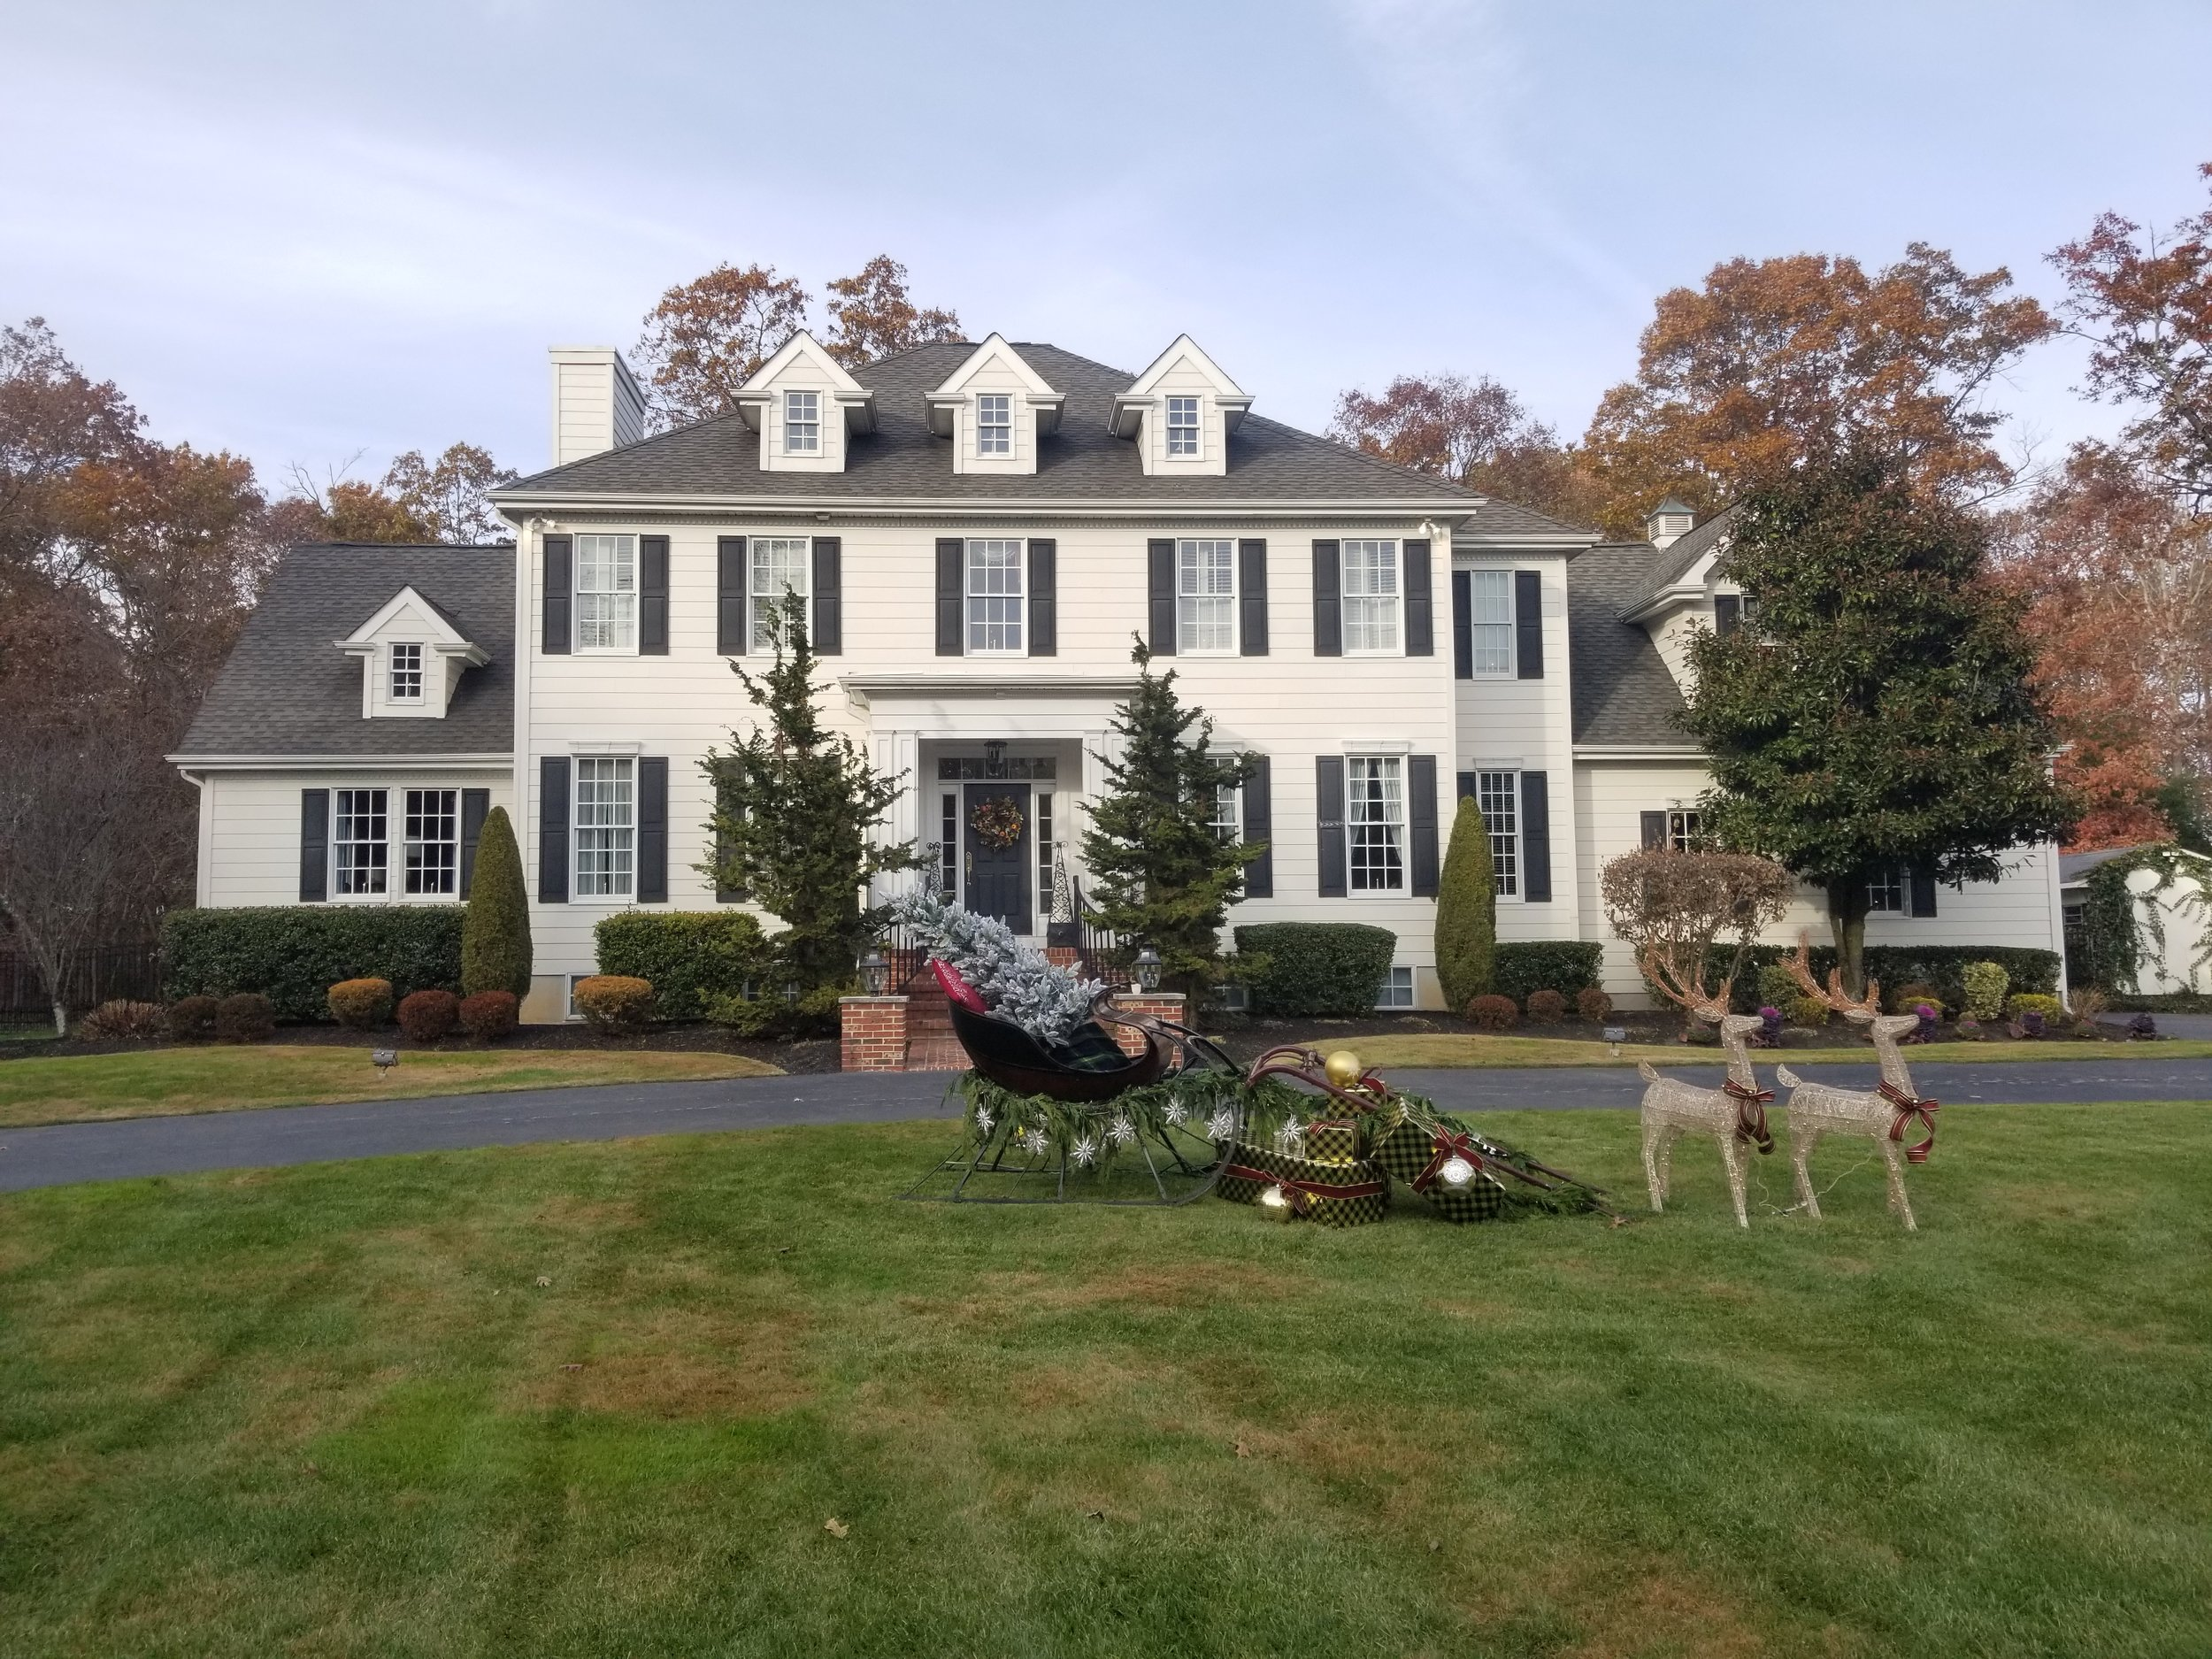 front of house with sleigh